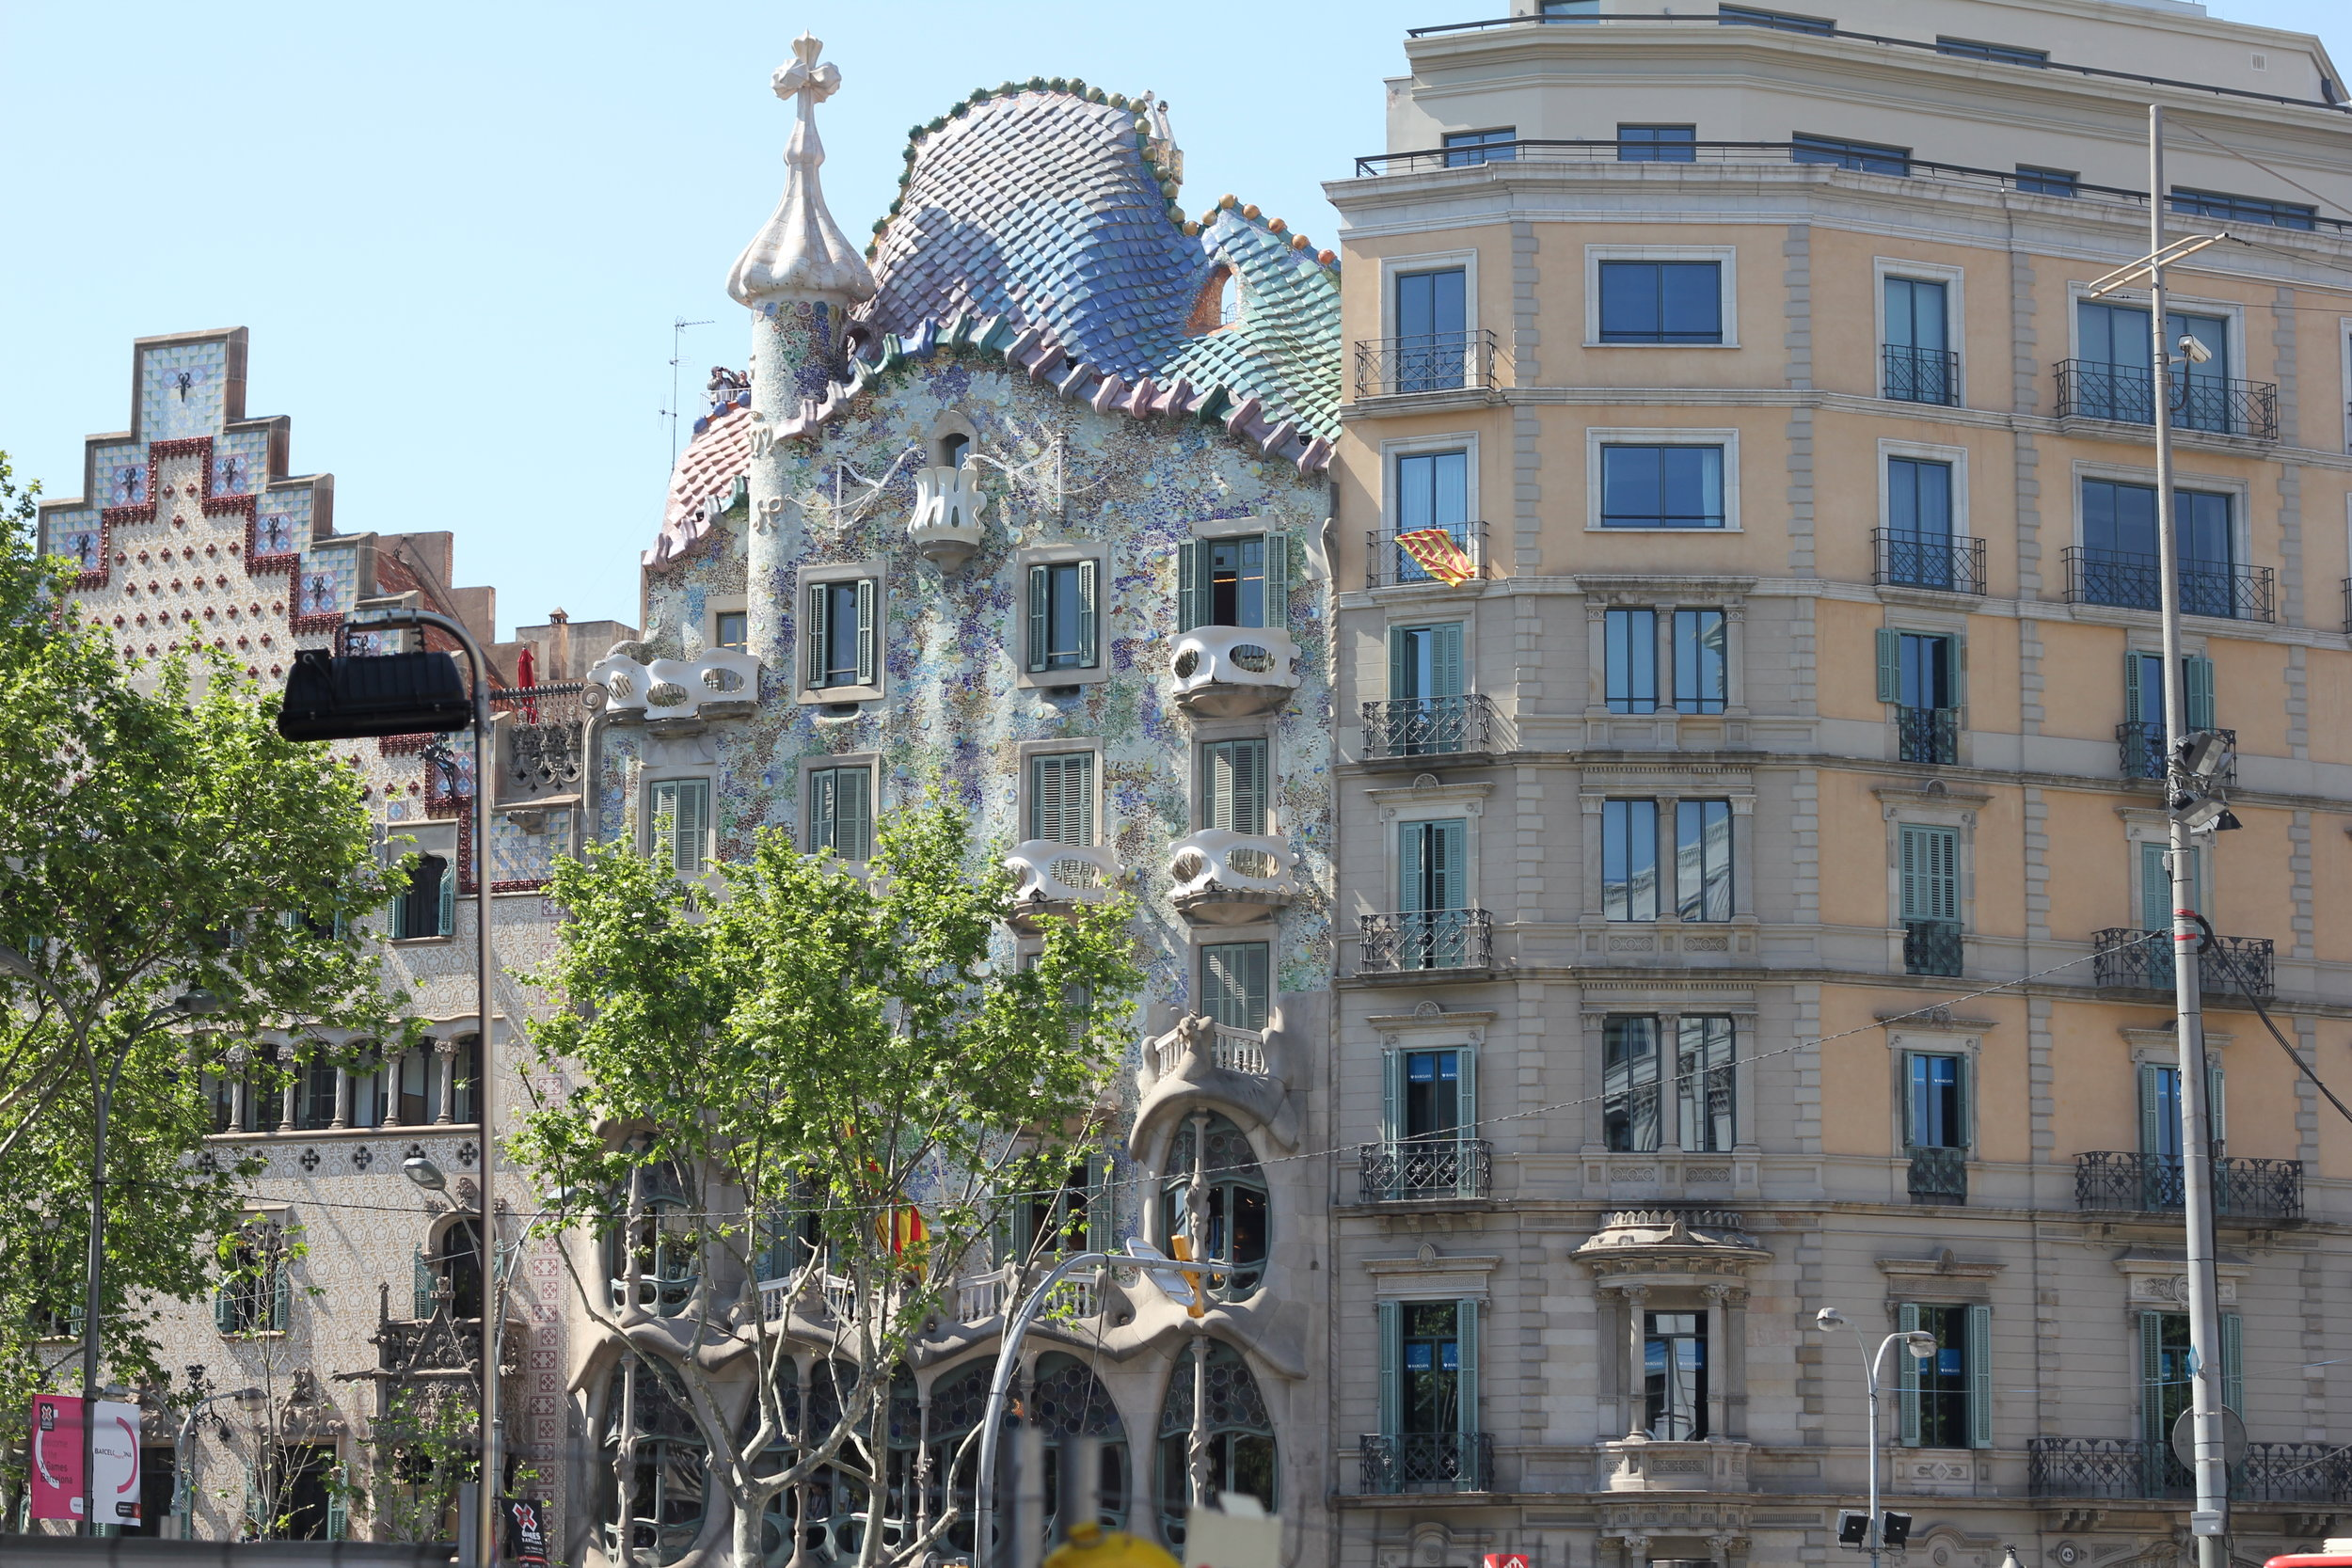 Casa Batlló, the one with the dragon scale roof